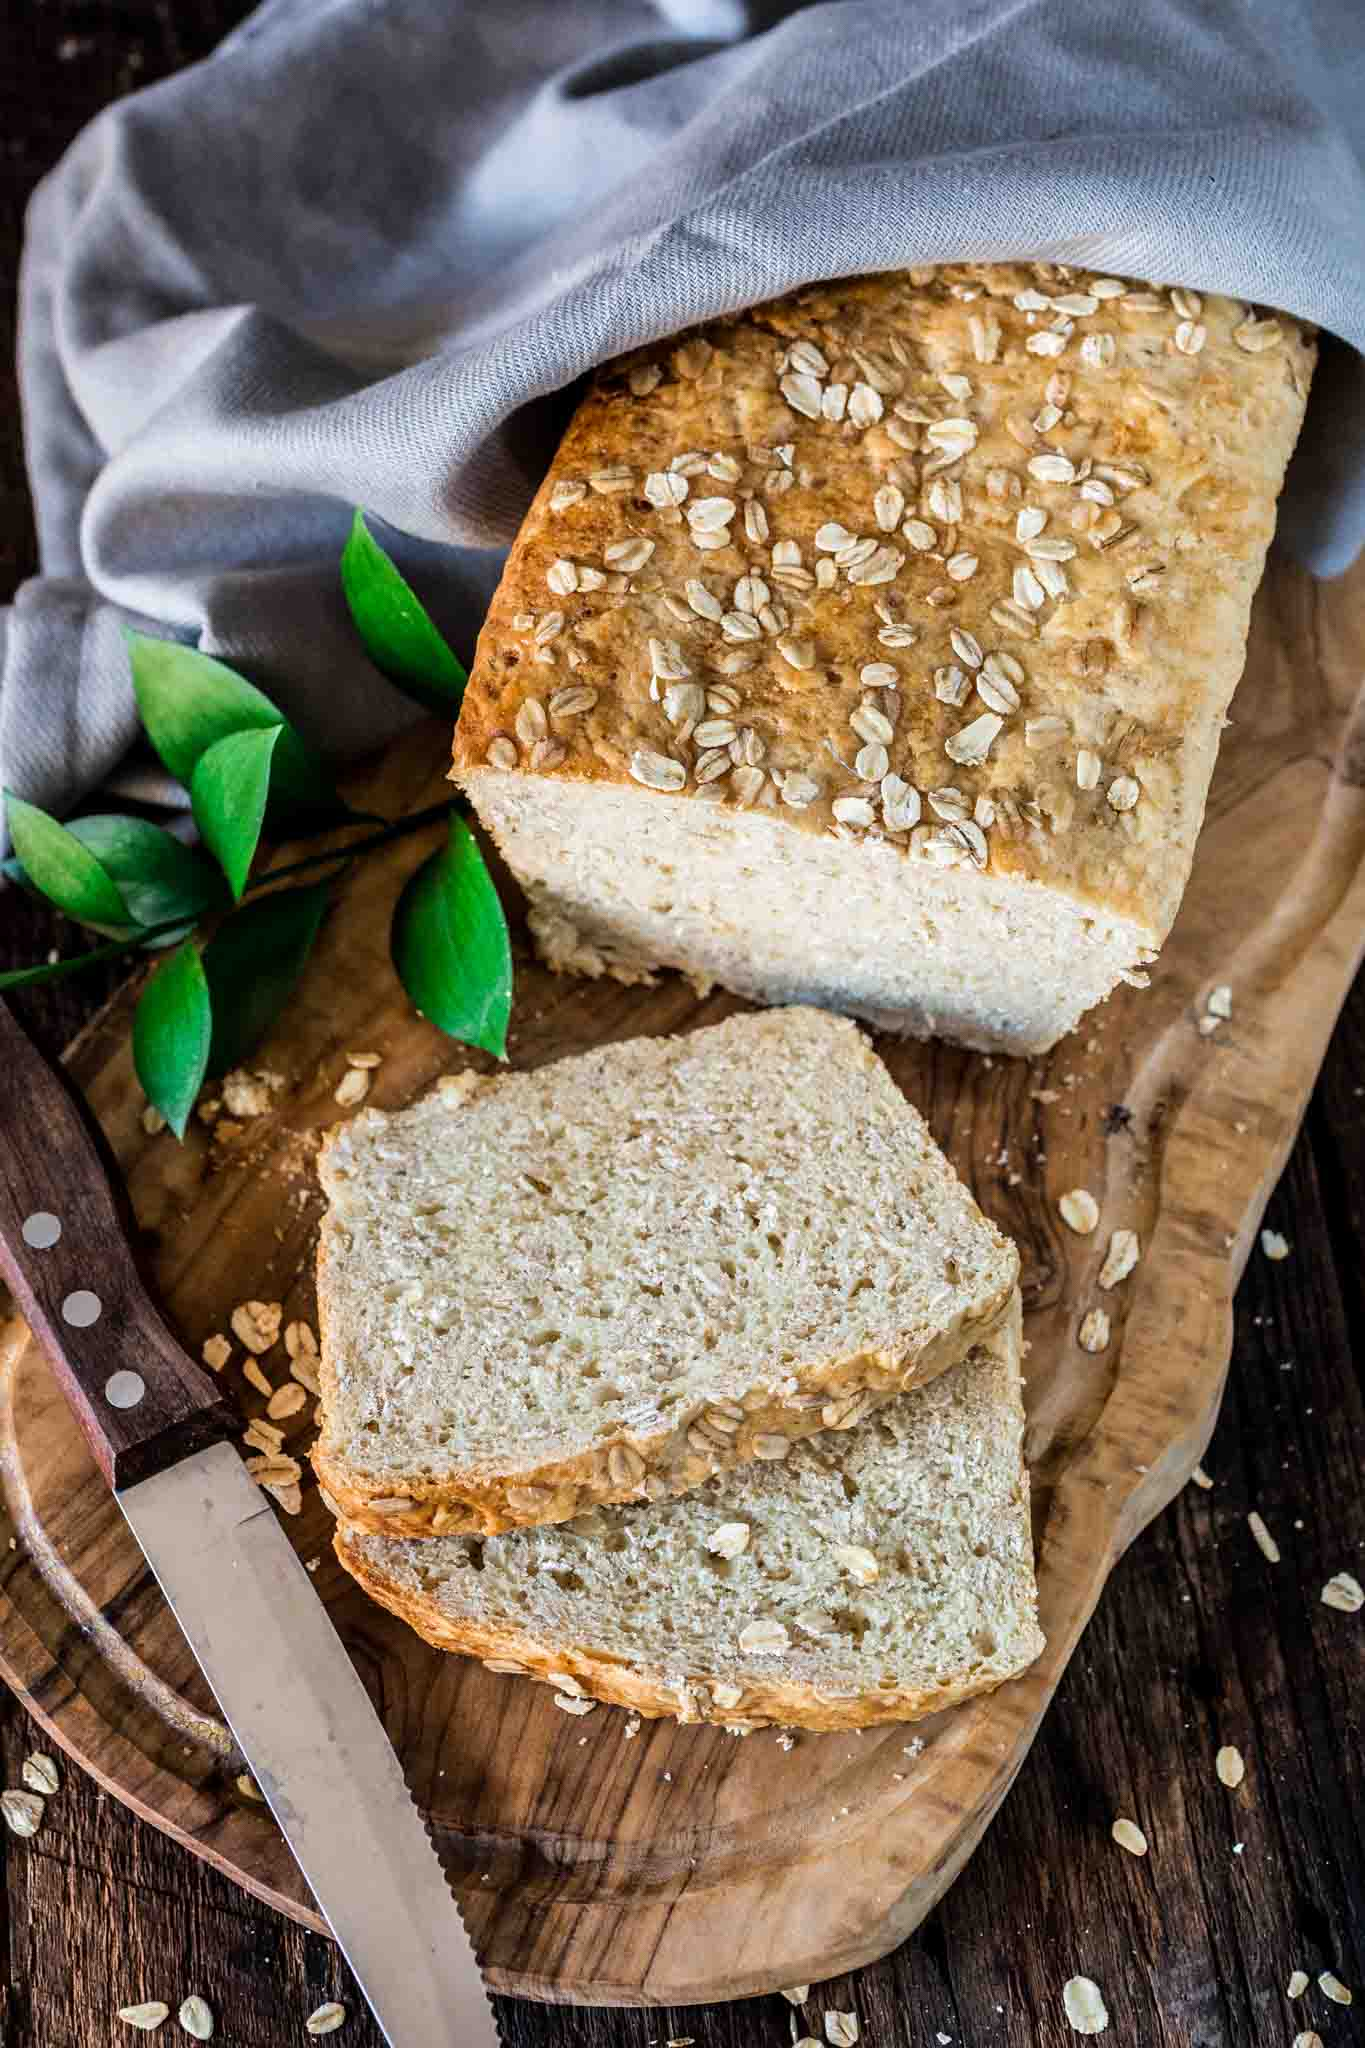 Honey Oat Bread | www.oliviascuisine.com | There's nothing better than a loaf of fresh Honey Oat Bread right out of the oven! Soft, slightly chewy and oh so delicious.